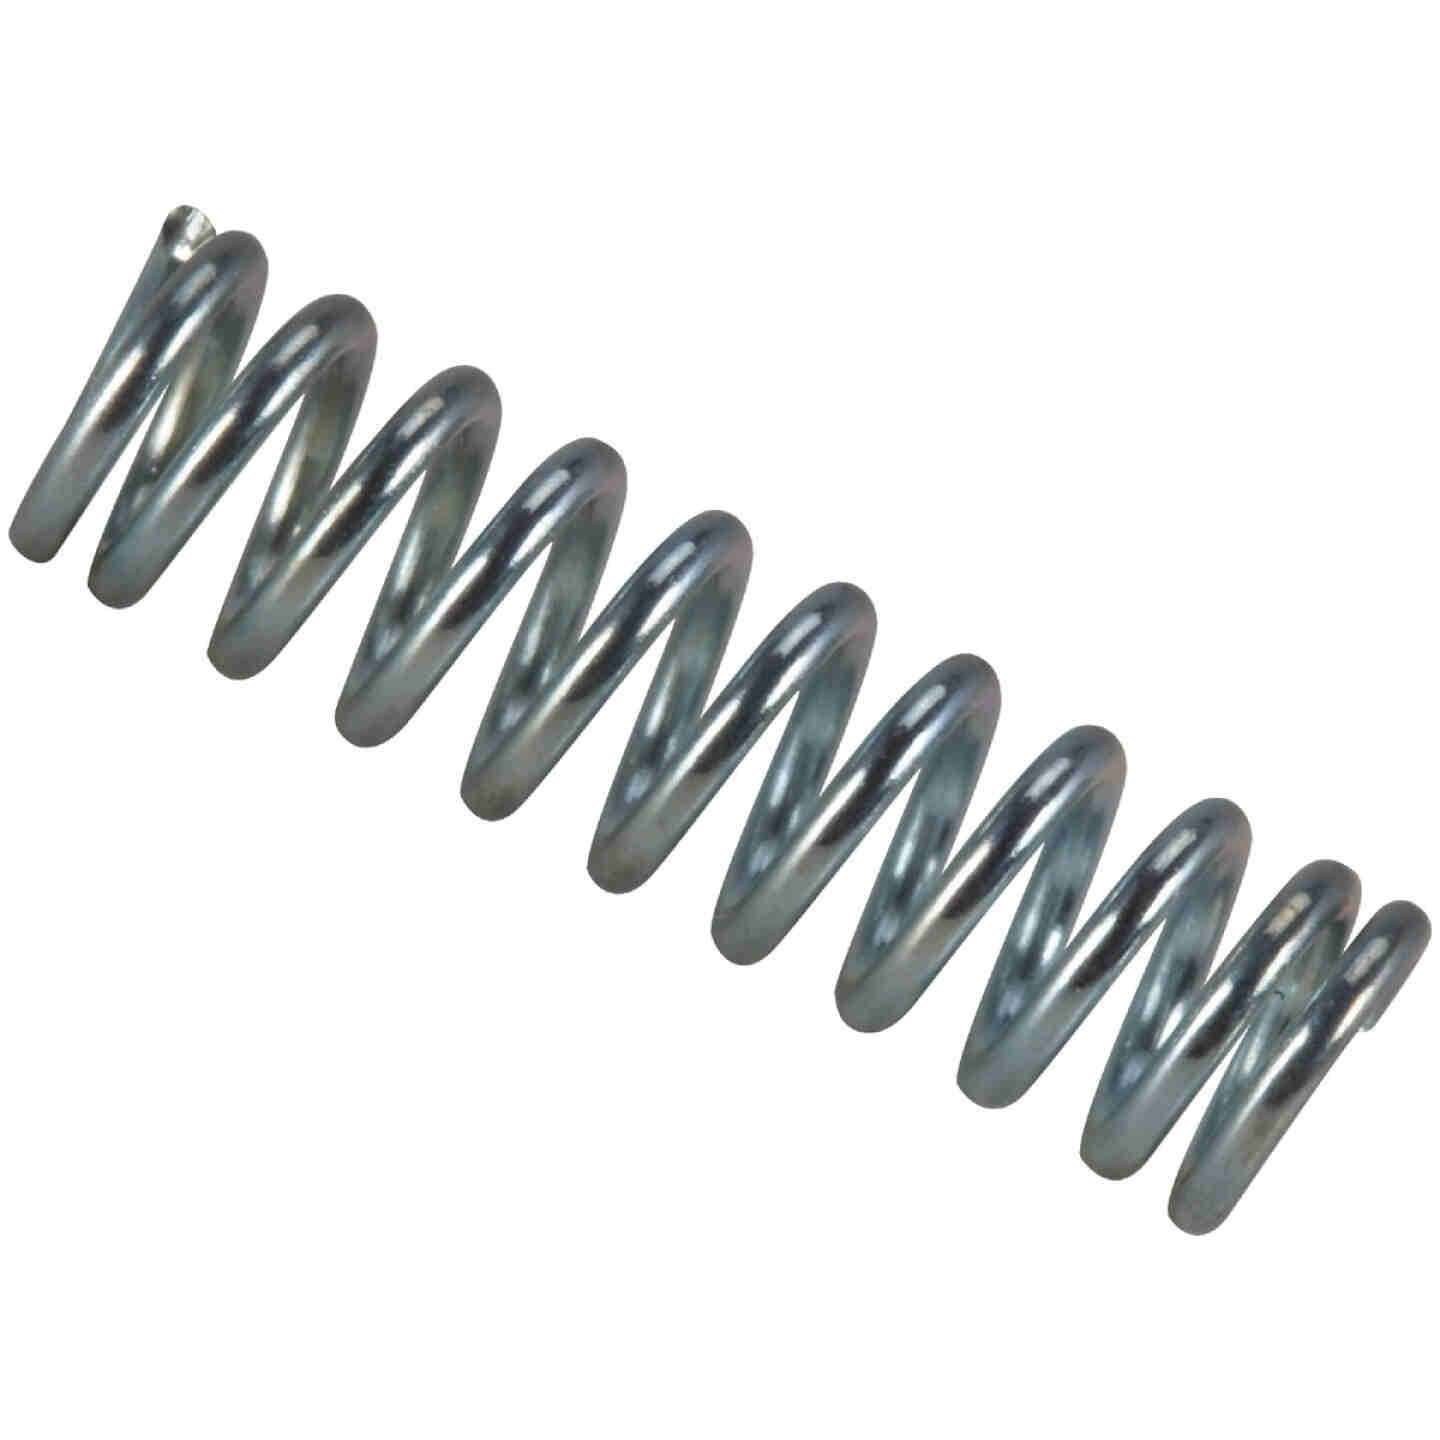 Century Spring 1-3/8 In. x 9/16 In. Compression Spring (2 Count) Image 1